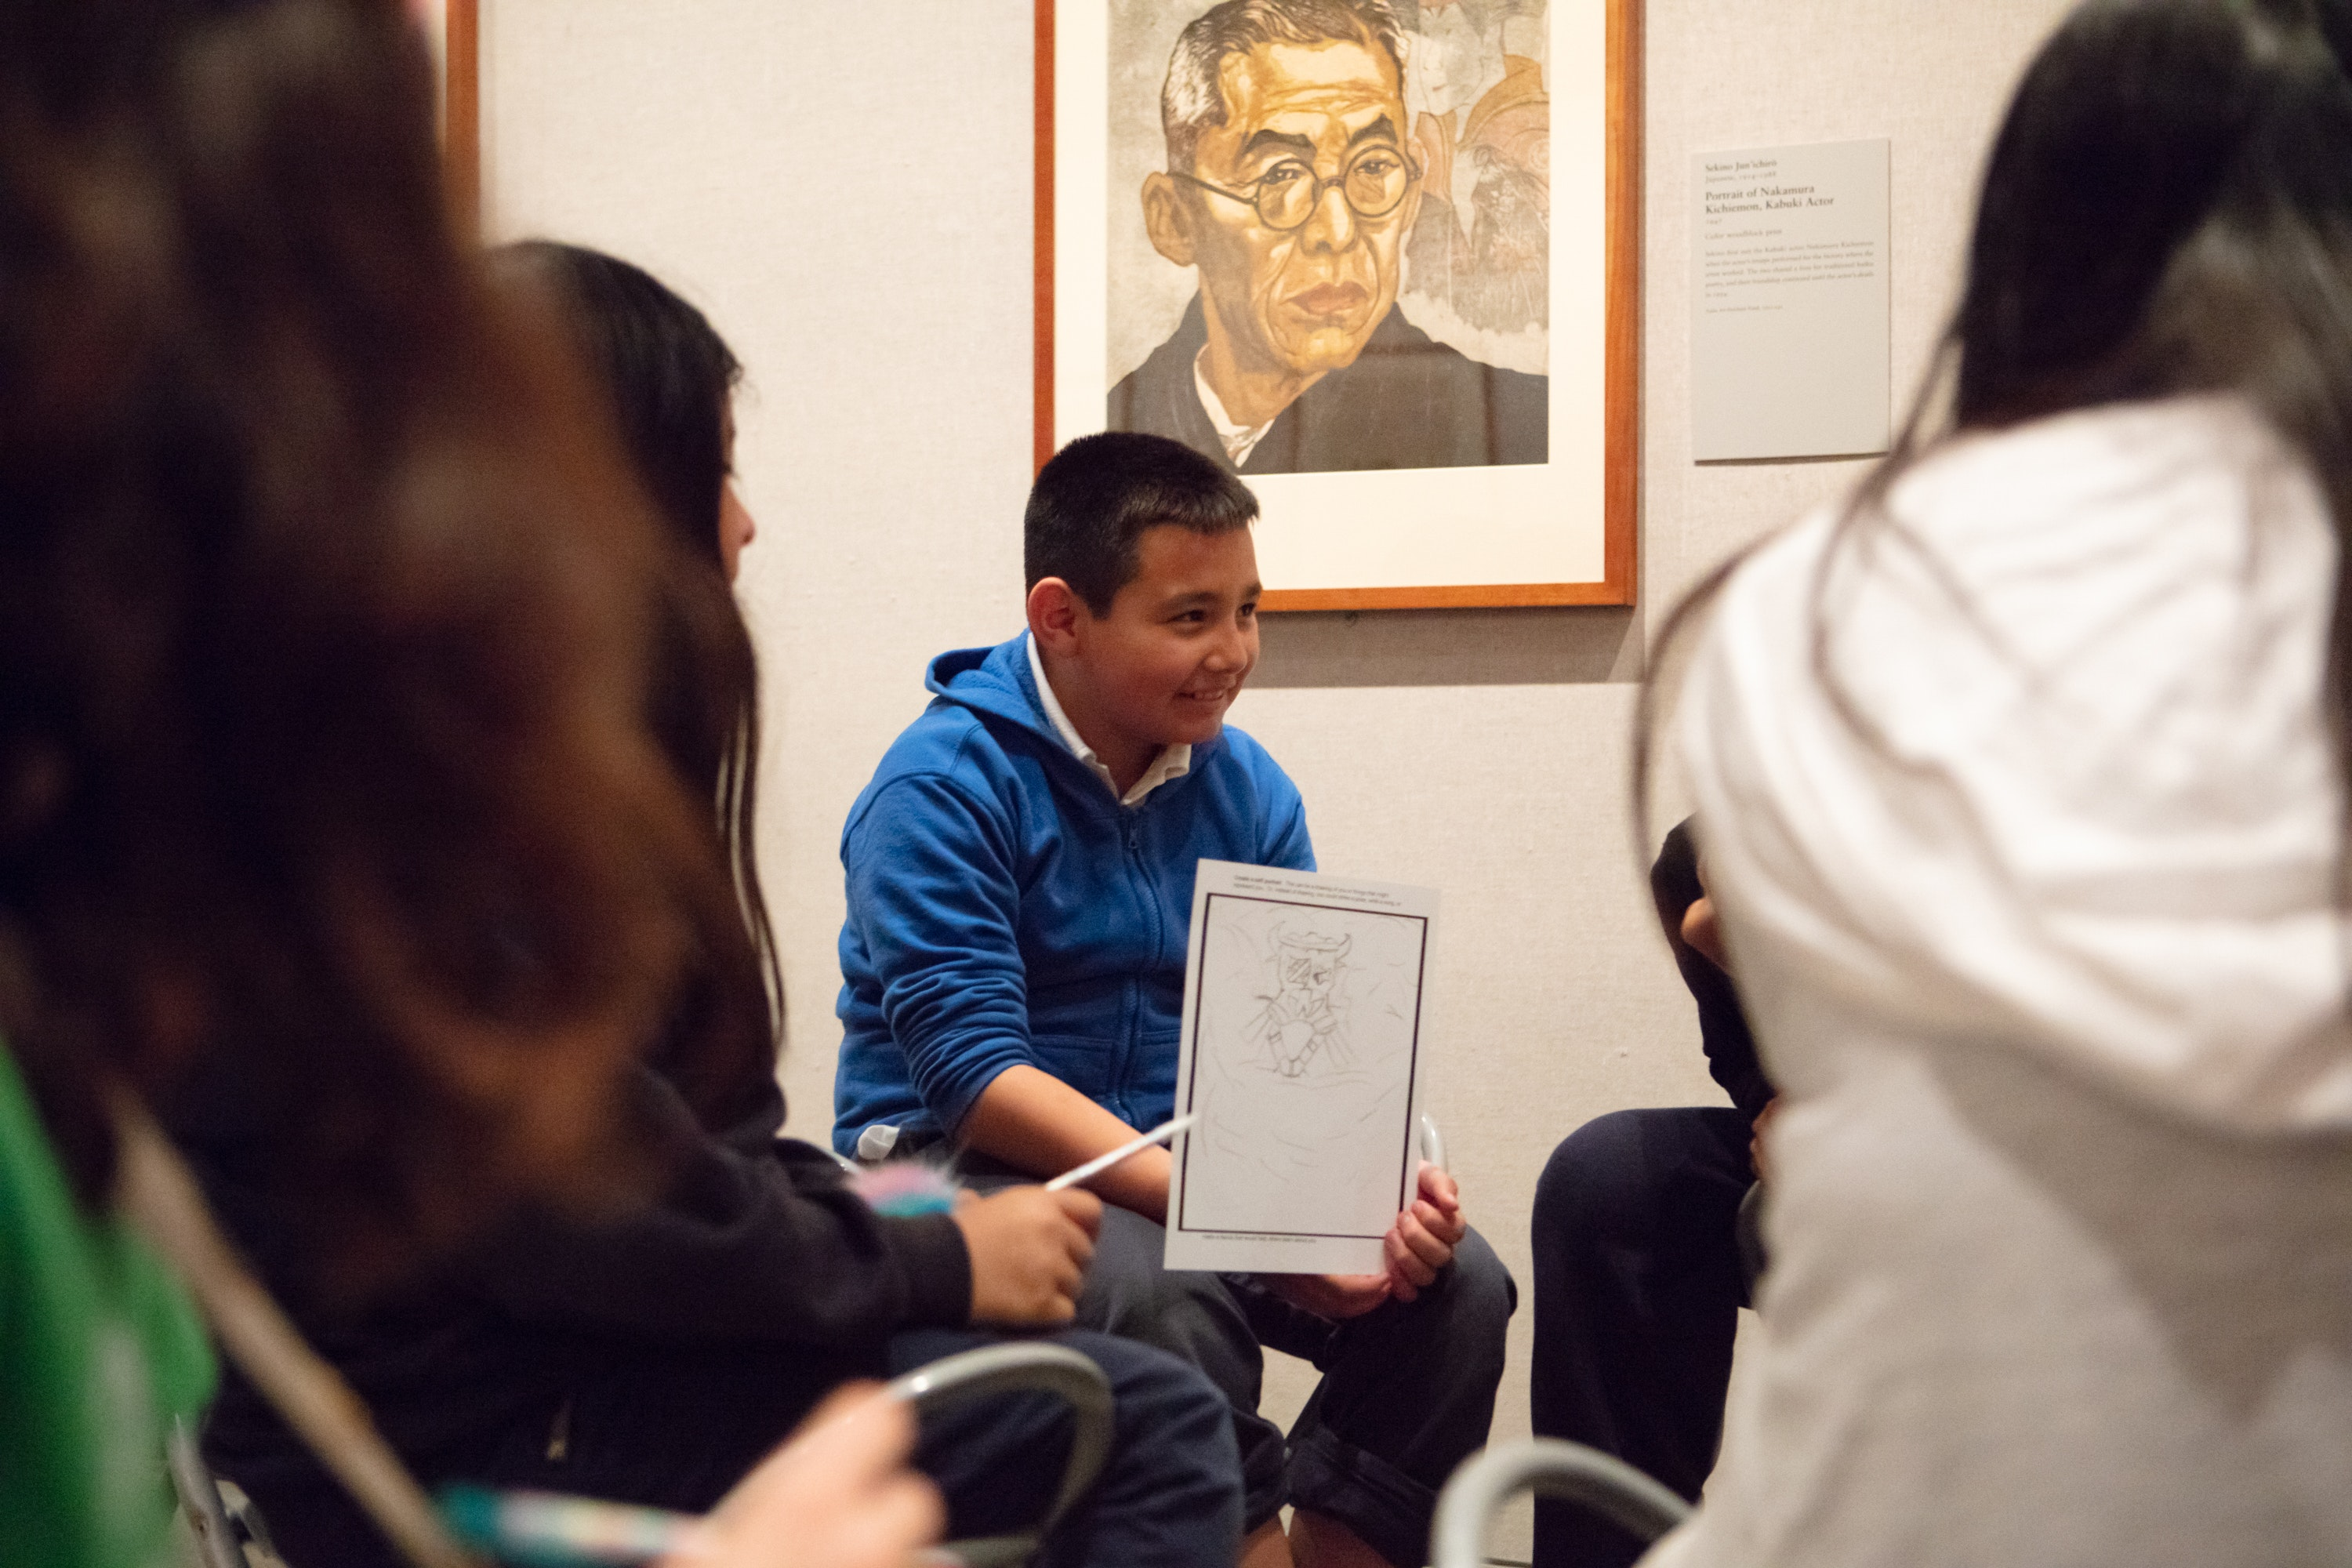 Young student holding a drawing he made in an exhibition of Japanese portraits